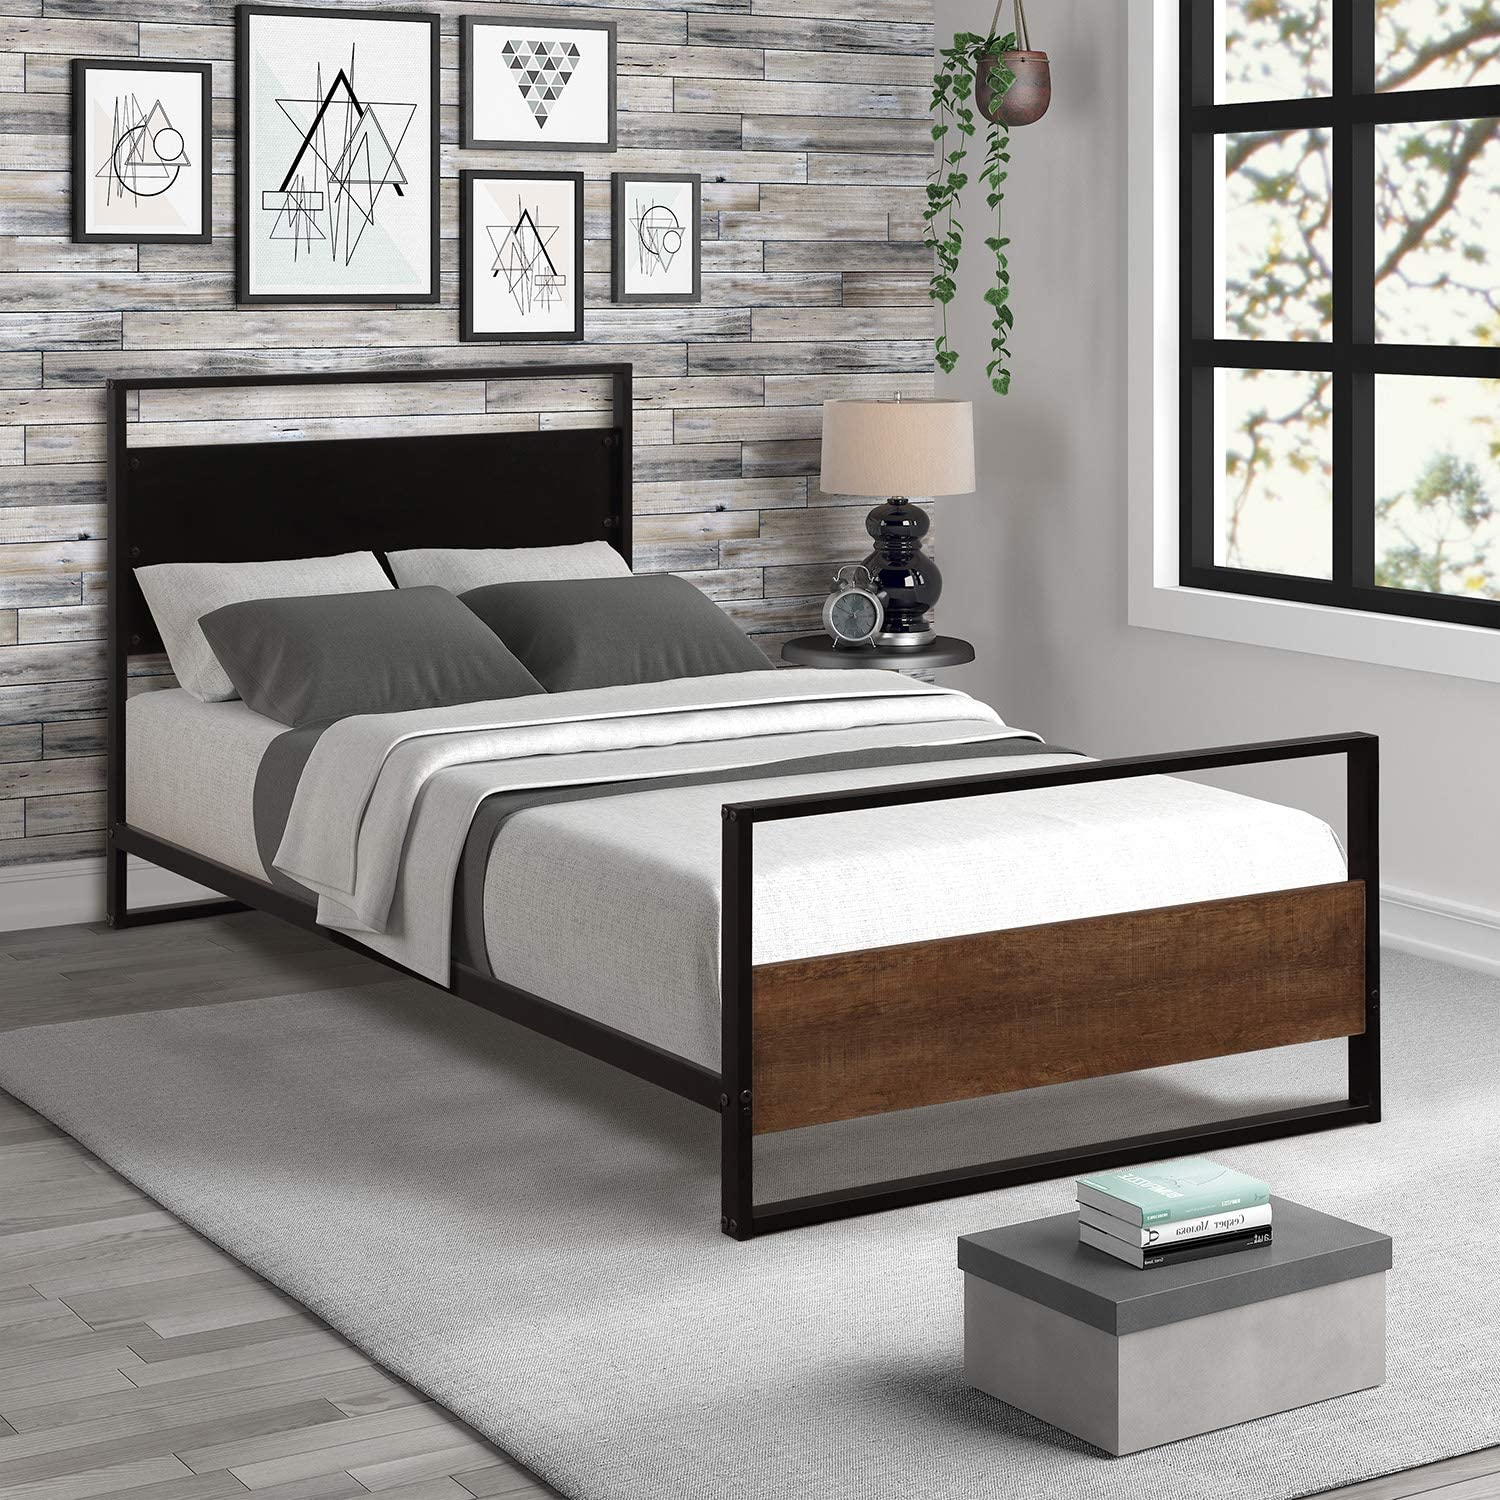 G-house Platform Bed Frame Metal and Wood with Headboard, Strong Slat Support No Box Spring Needed Twin